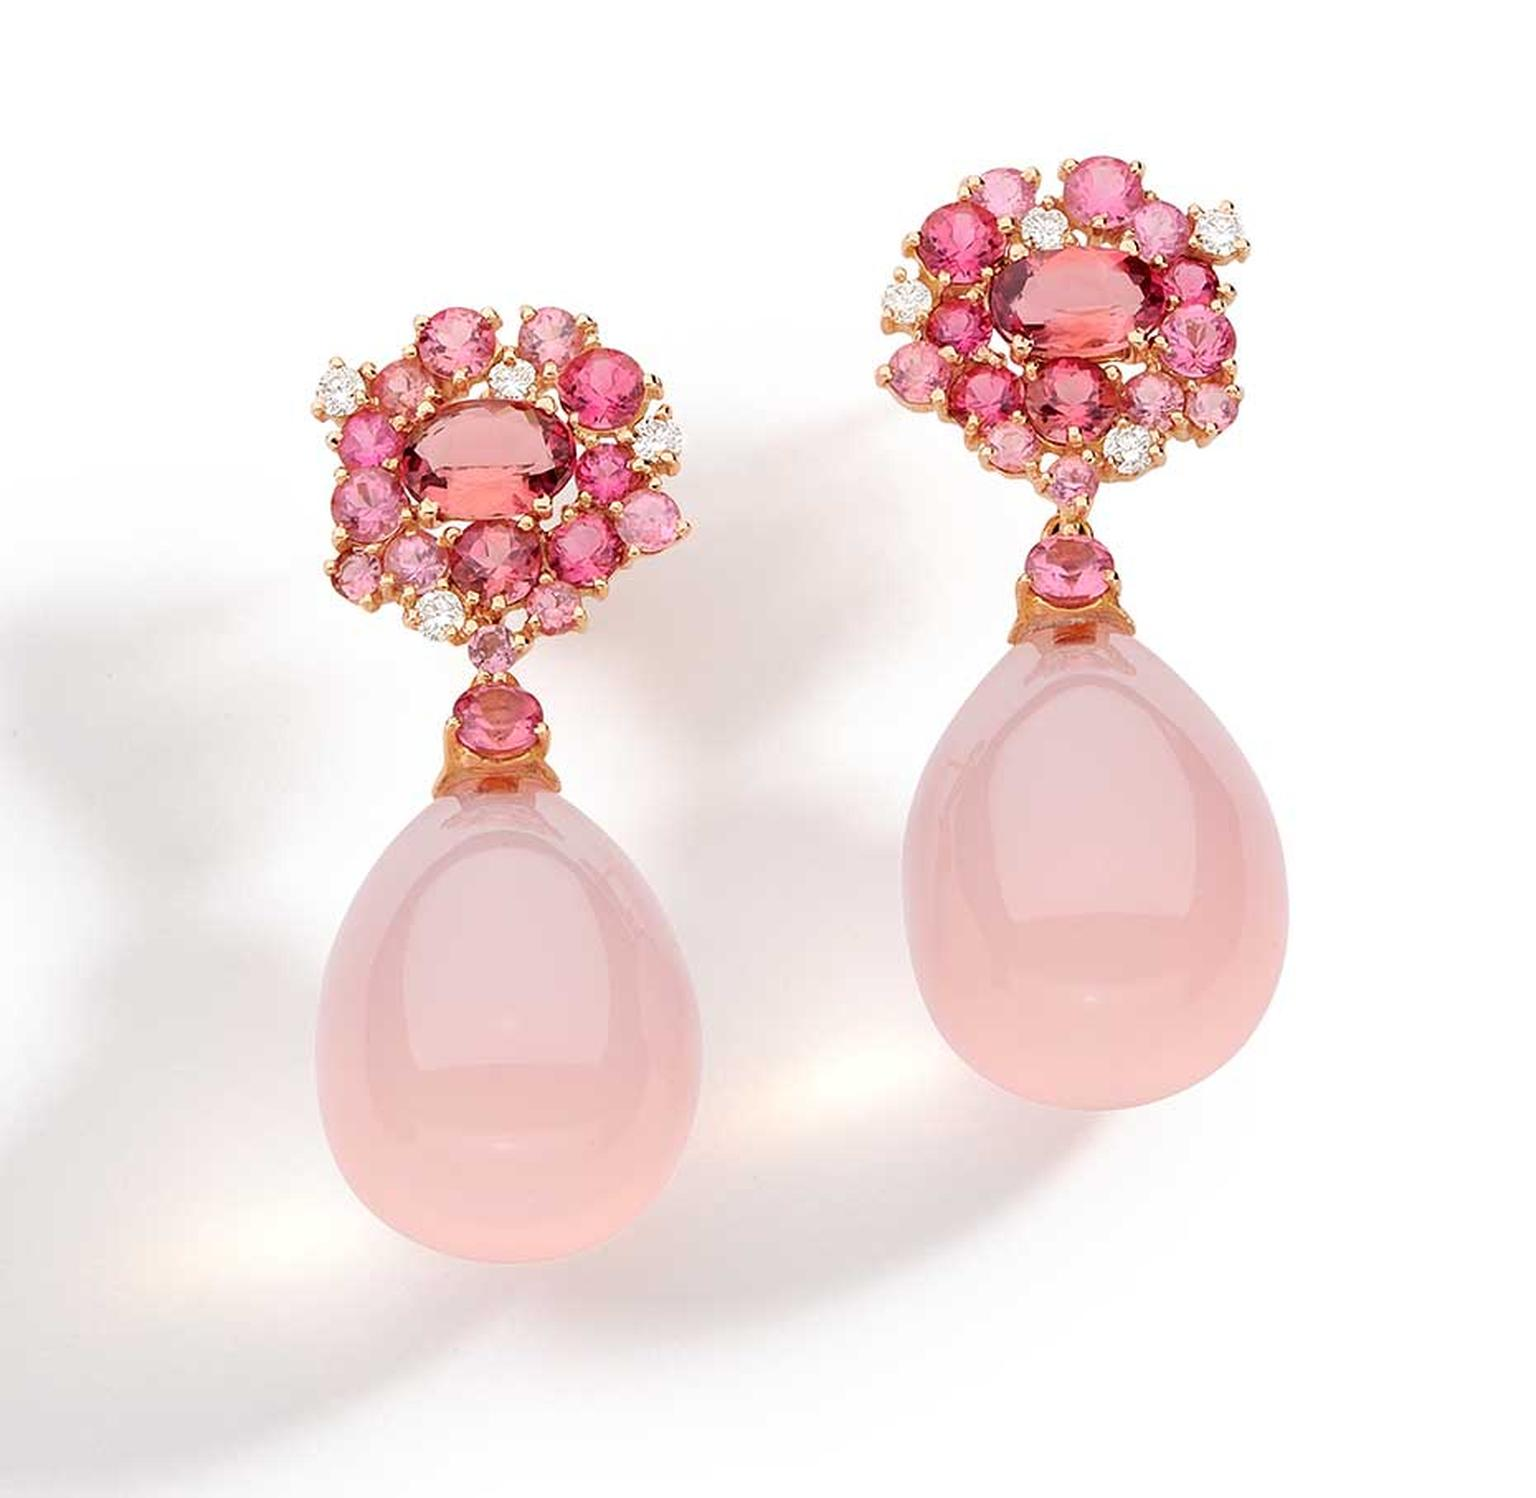 Brumani Baobab Rose collection earrings in rose gold with round diamonds, pink quartz and pink tourmaline